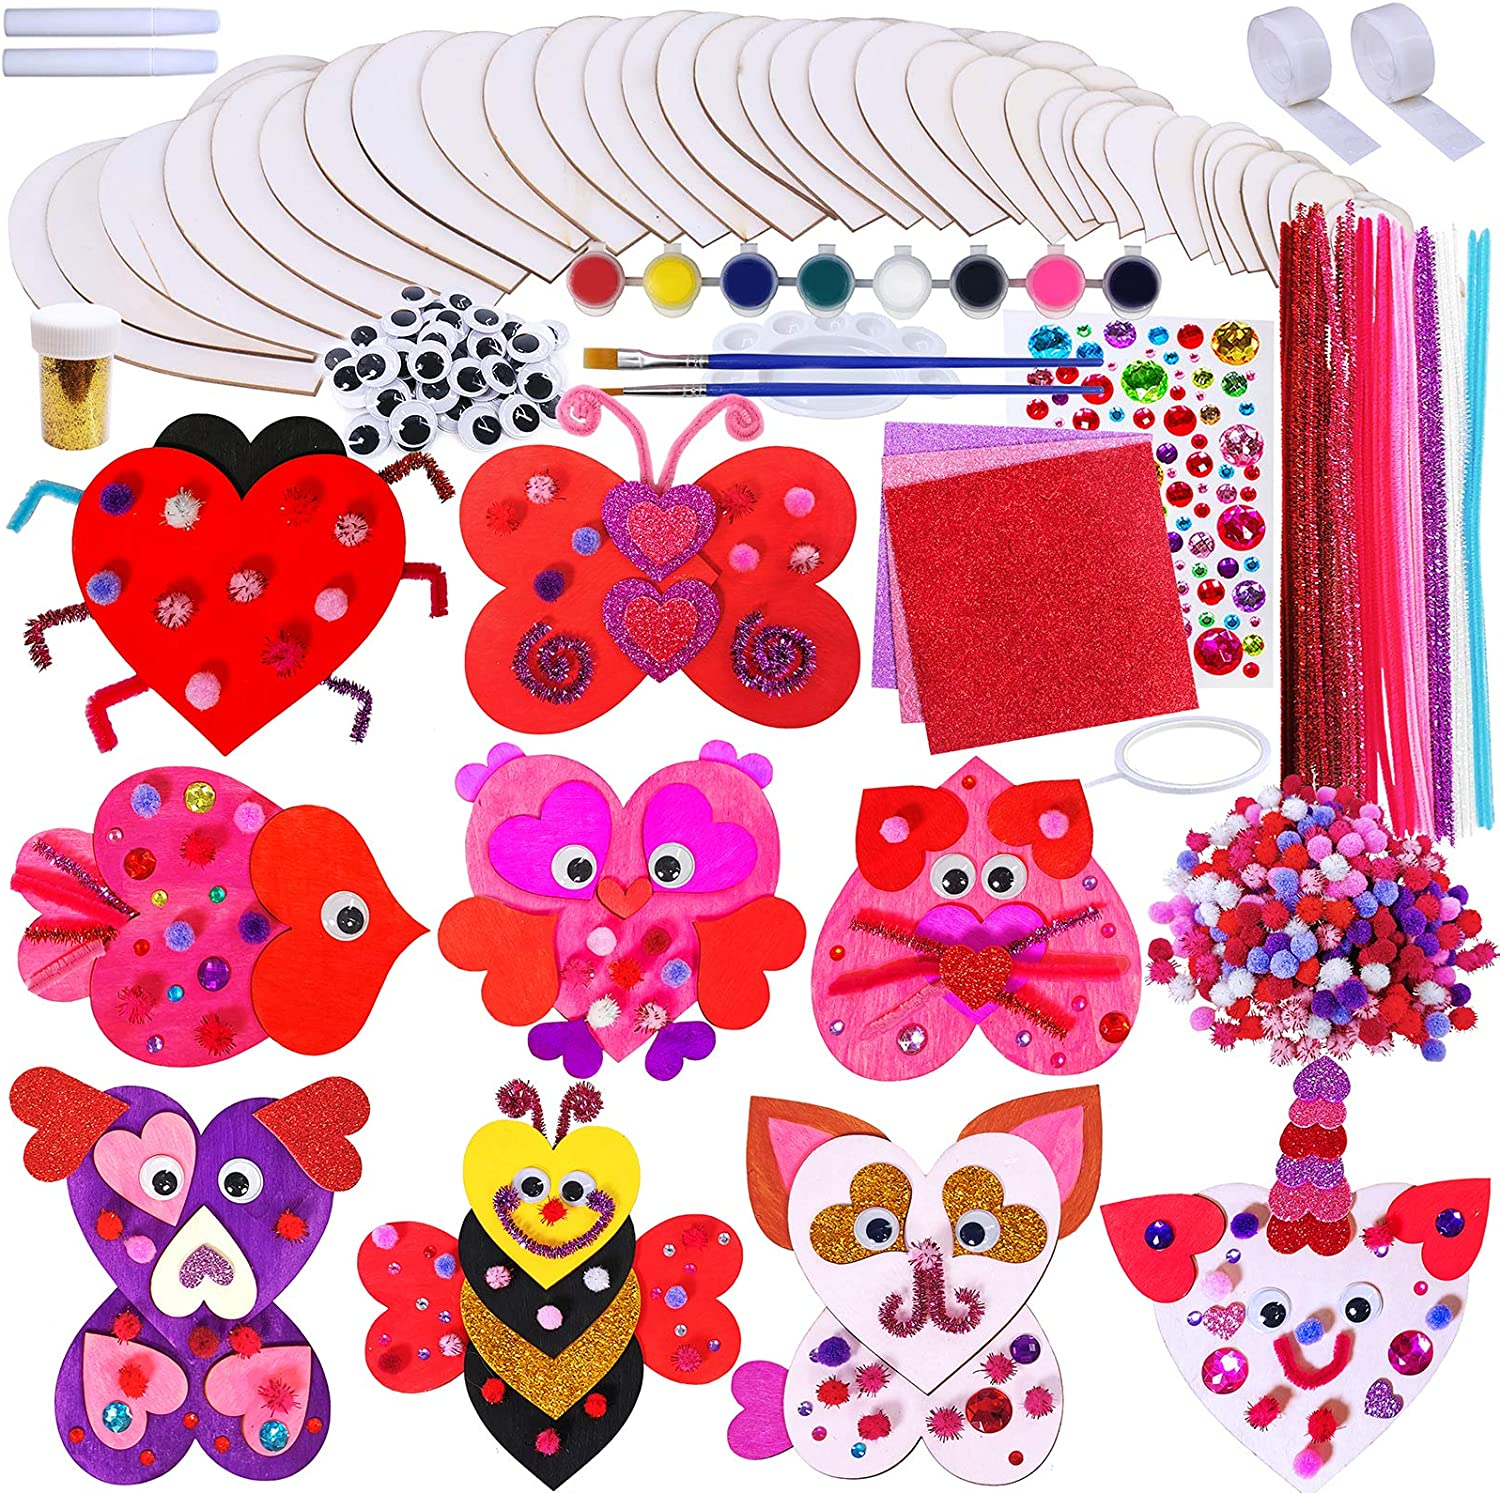 18 Sets Heart Animals Wood Ornaments Decoration DIY Wood Heart Craft Kit Paintable Wooden Heart Cutouts Paints Pom-poms Googly Eyes for Kids Valentine Classroom Party Decor Mother's Day Gift